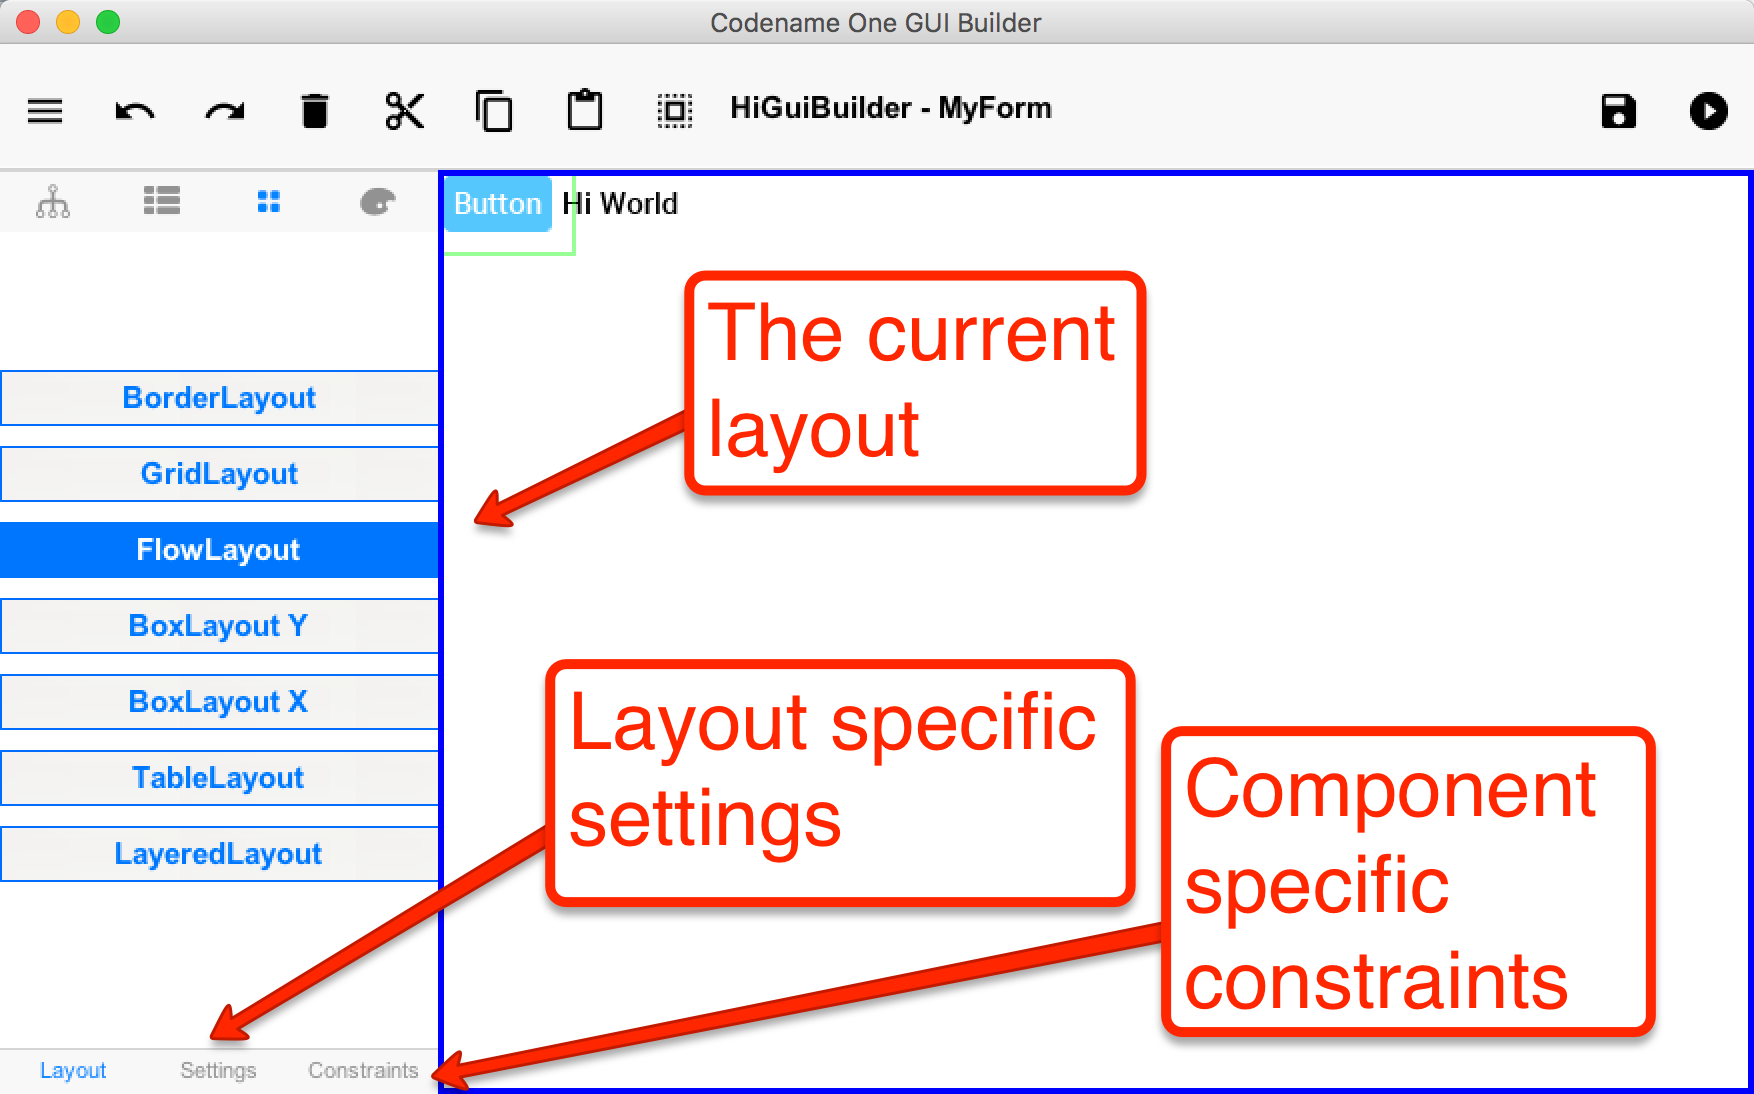 Layouts can be picked via the GUI builder UI